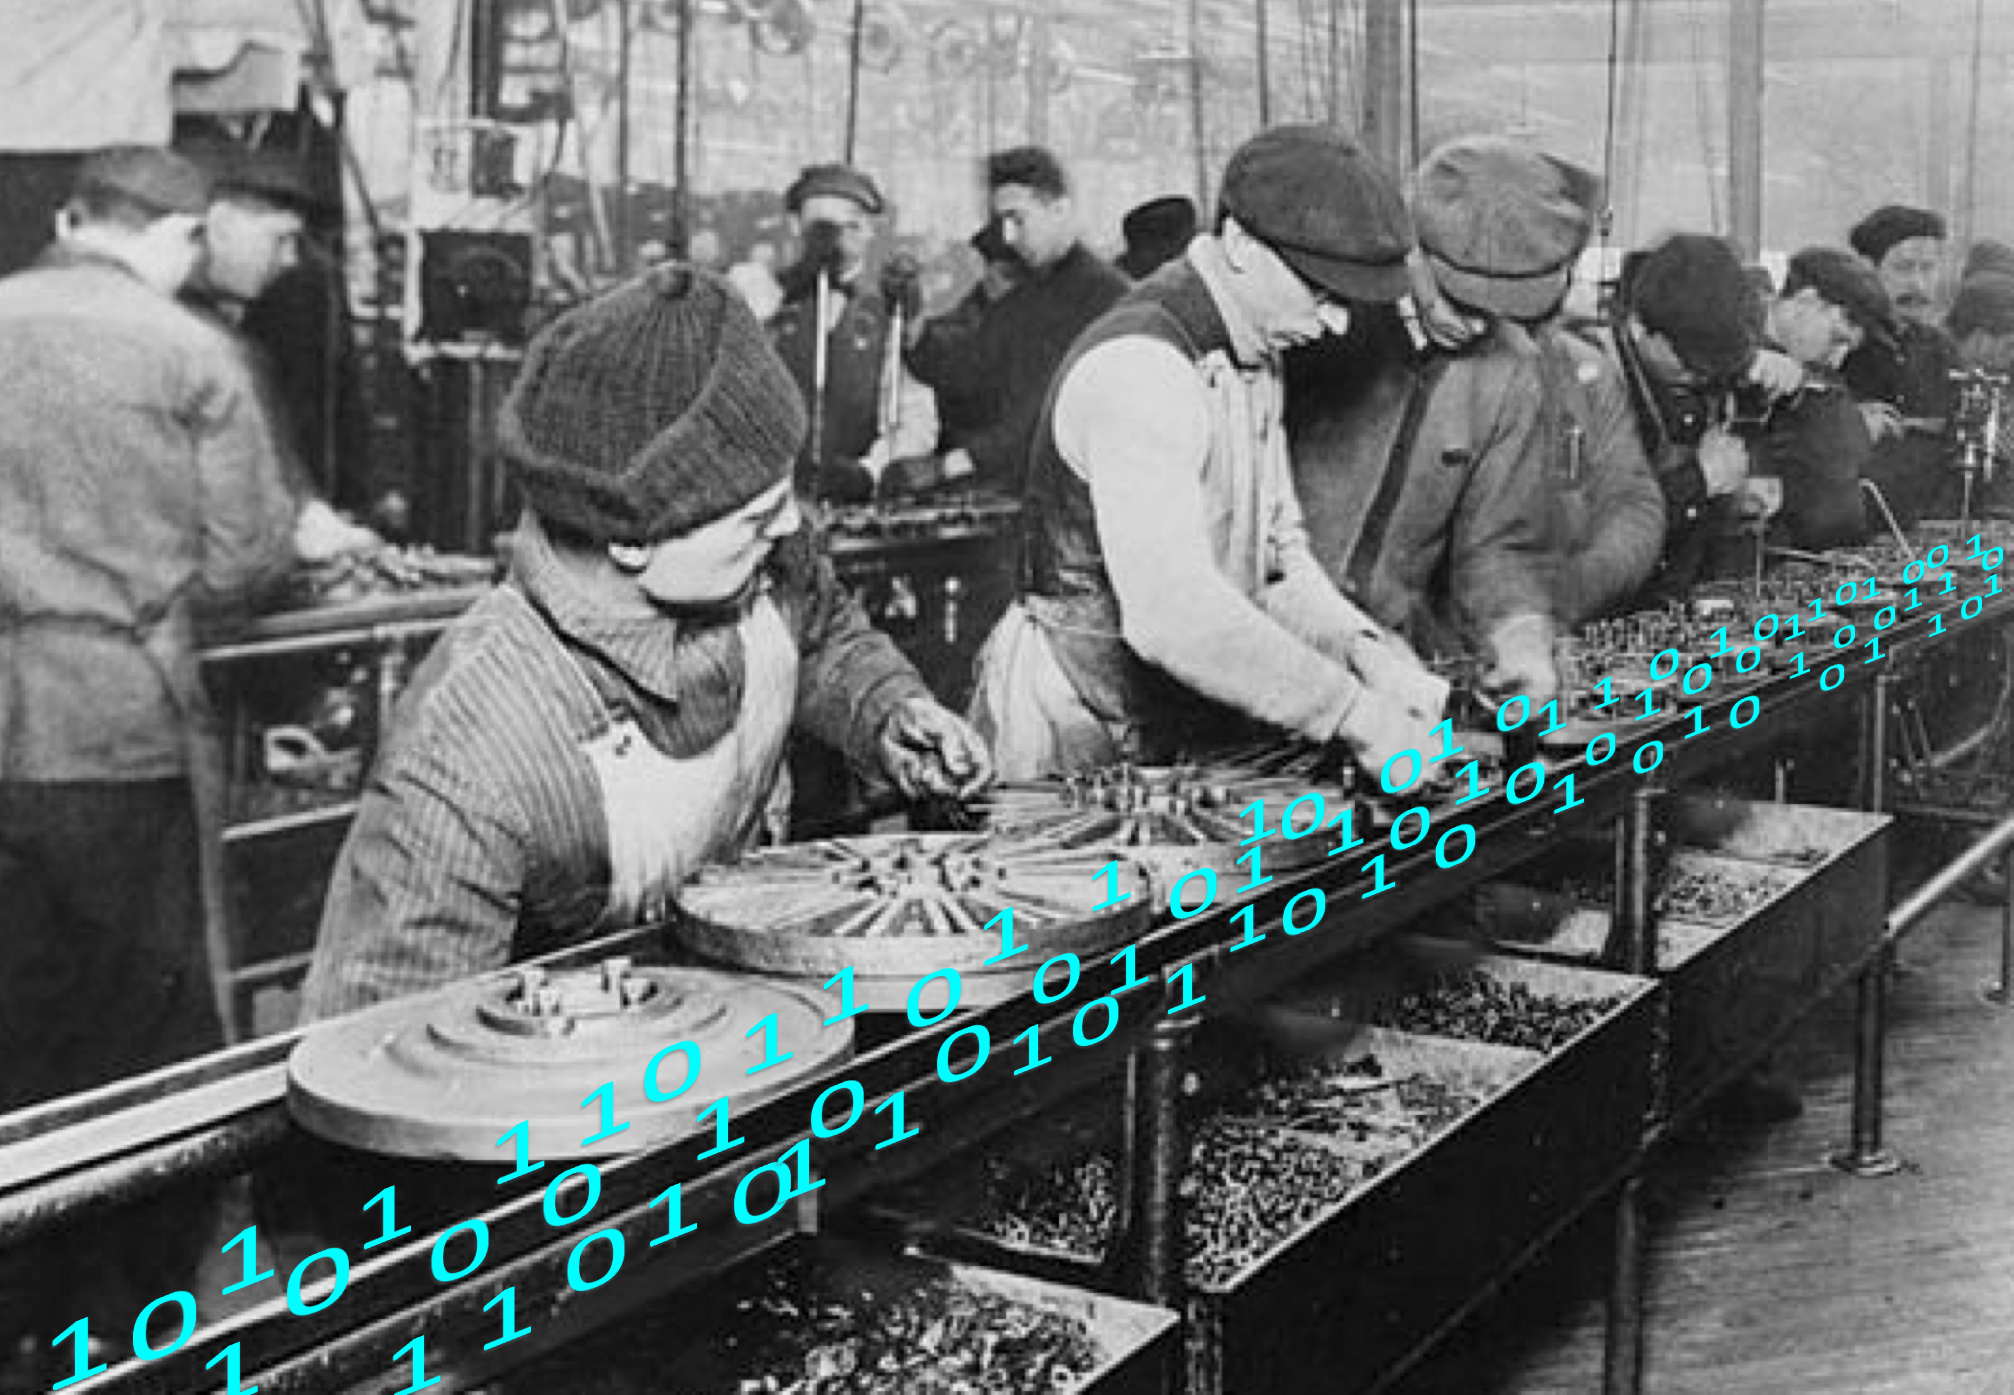 Beware the data science pin factory: The power of the full-stack data science generalist and the perils of division of labor through function